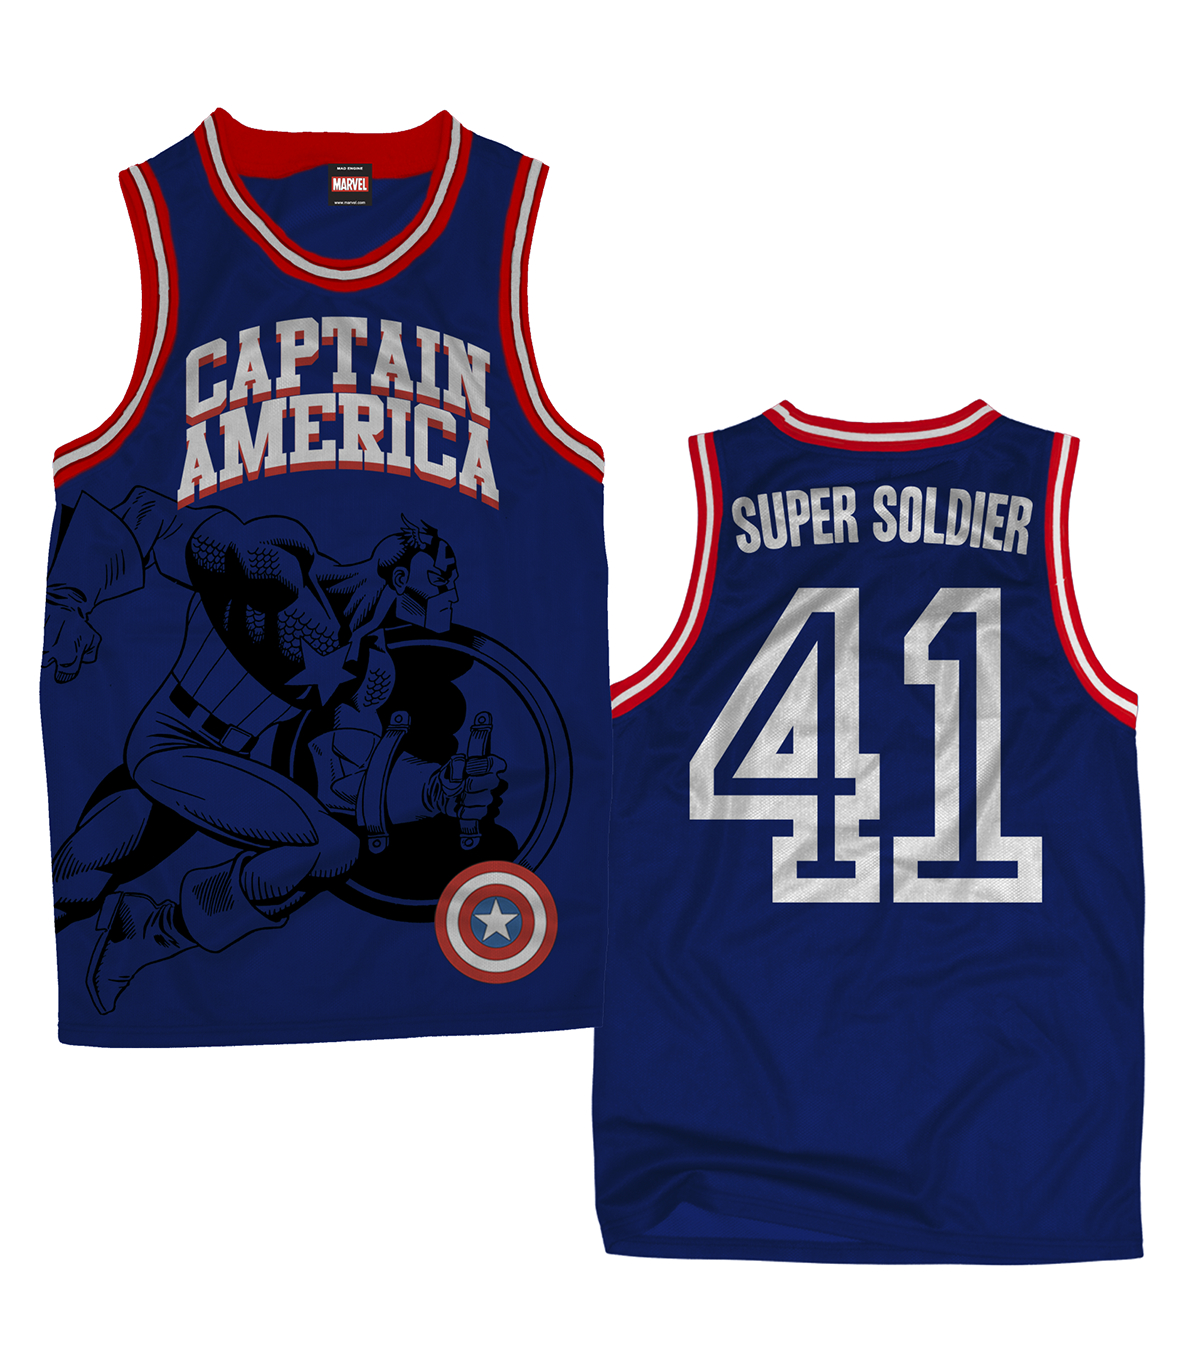 CAPTAIN AMERICA WE ARE #1 BASKETBALL JERSEY XXL